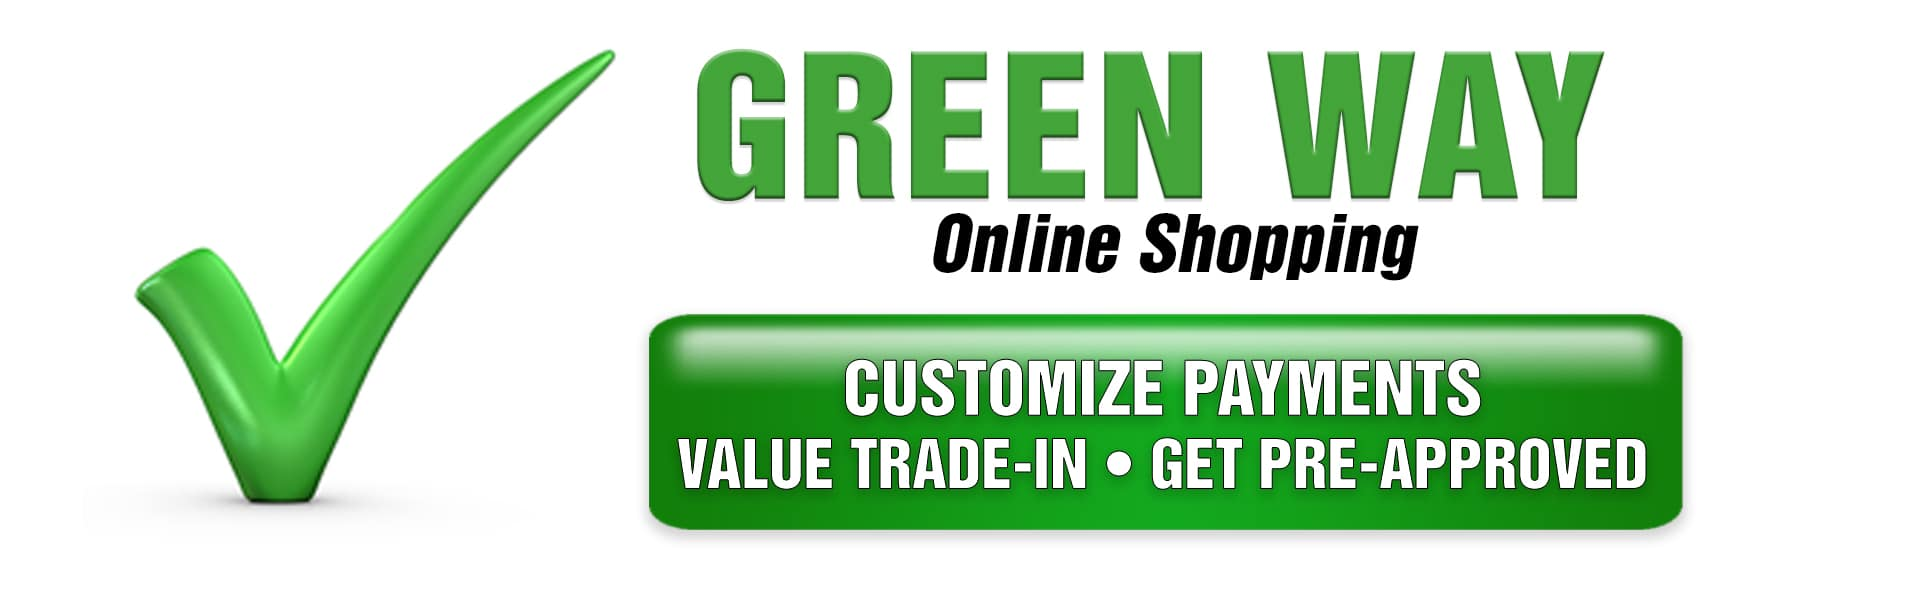 Online Shopper, customize payments, value trade-in, get pre-approved